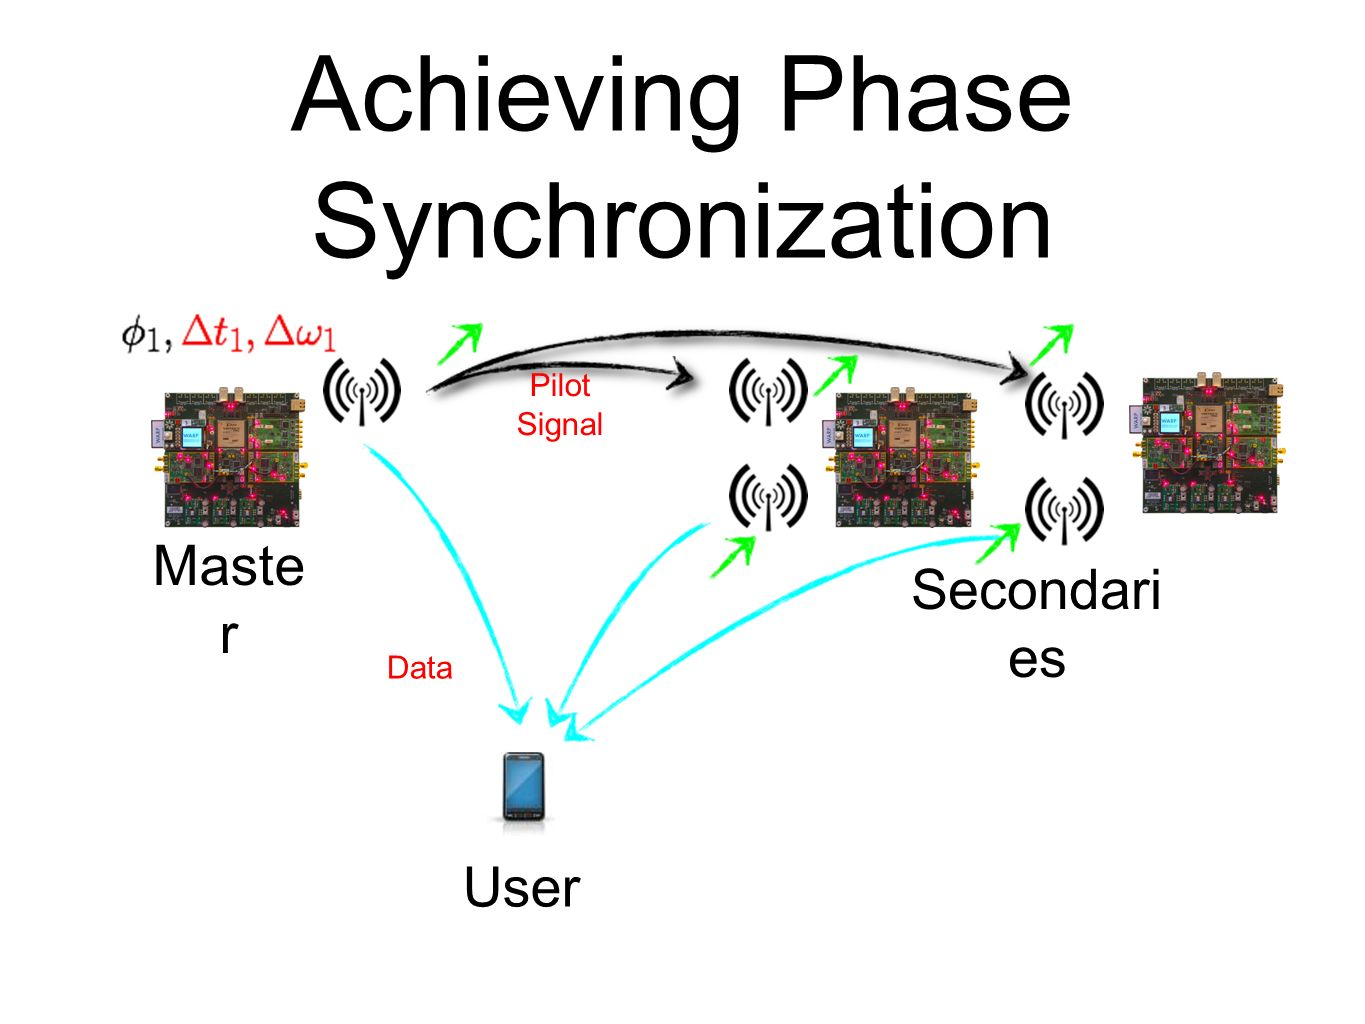 Achieving Phase Synchronization